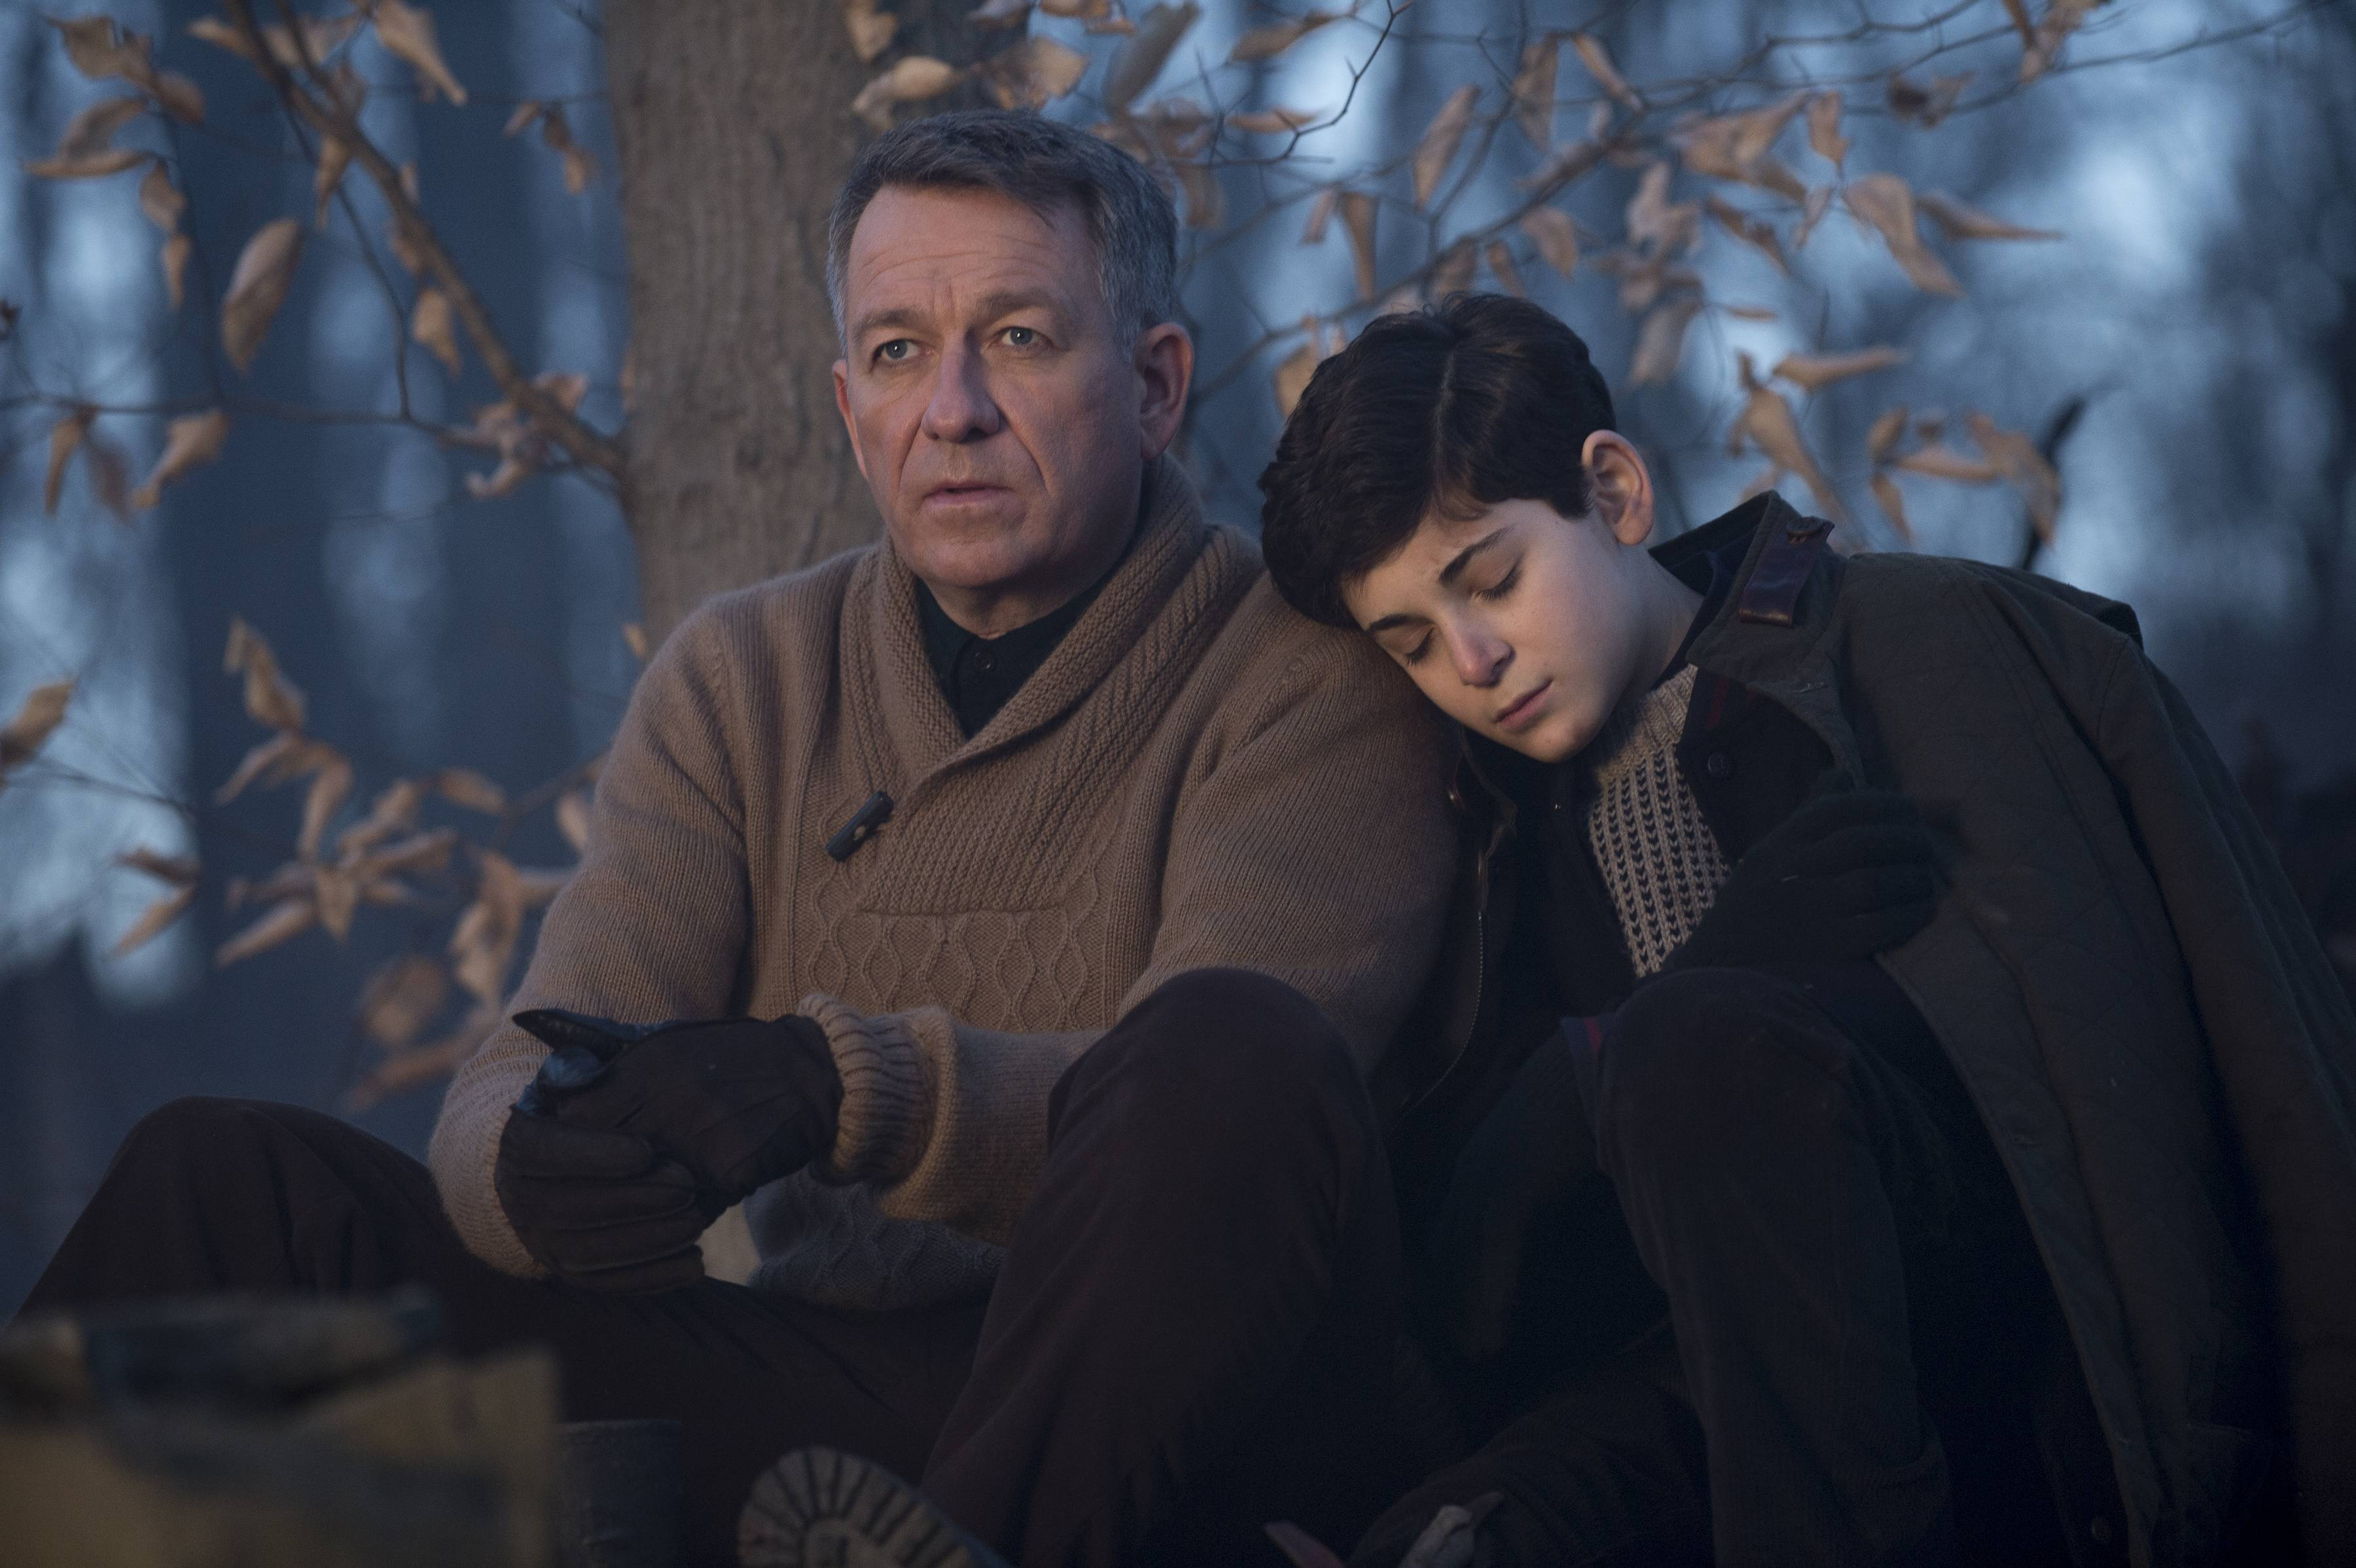 """GOTHAM: Bruce Wayne (David Mazouz, R) is comforted by Alfred (Sean Pertwee, L) after a treacherous hike in the""""The Scarecrow"""" episode of GOTHAM airing Monday, Feb. 9 (8:00-9:00 PM ET/PT) on FOX. ©2015 Fox Broadcasting Co. Cr: Jessica Miglio/FOX"""